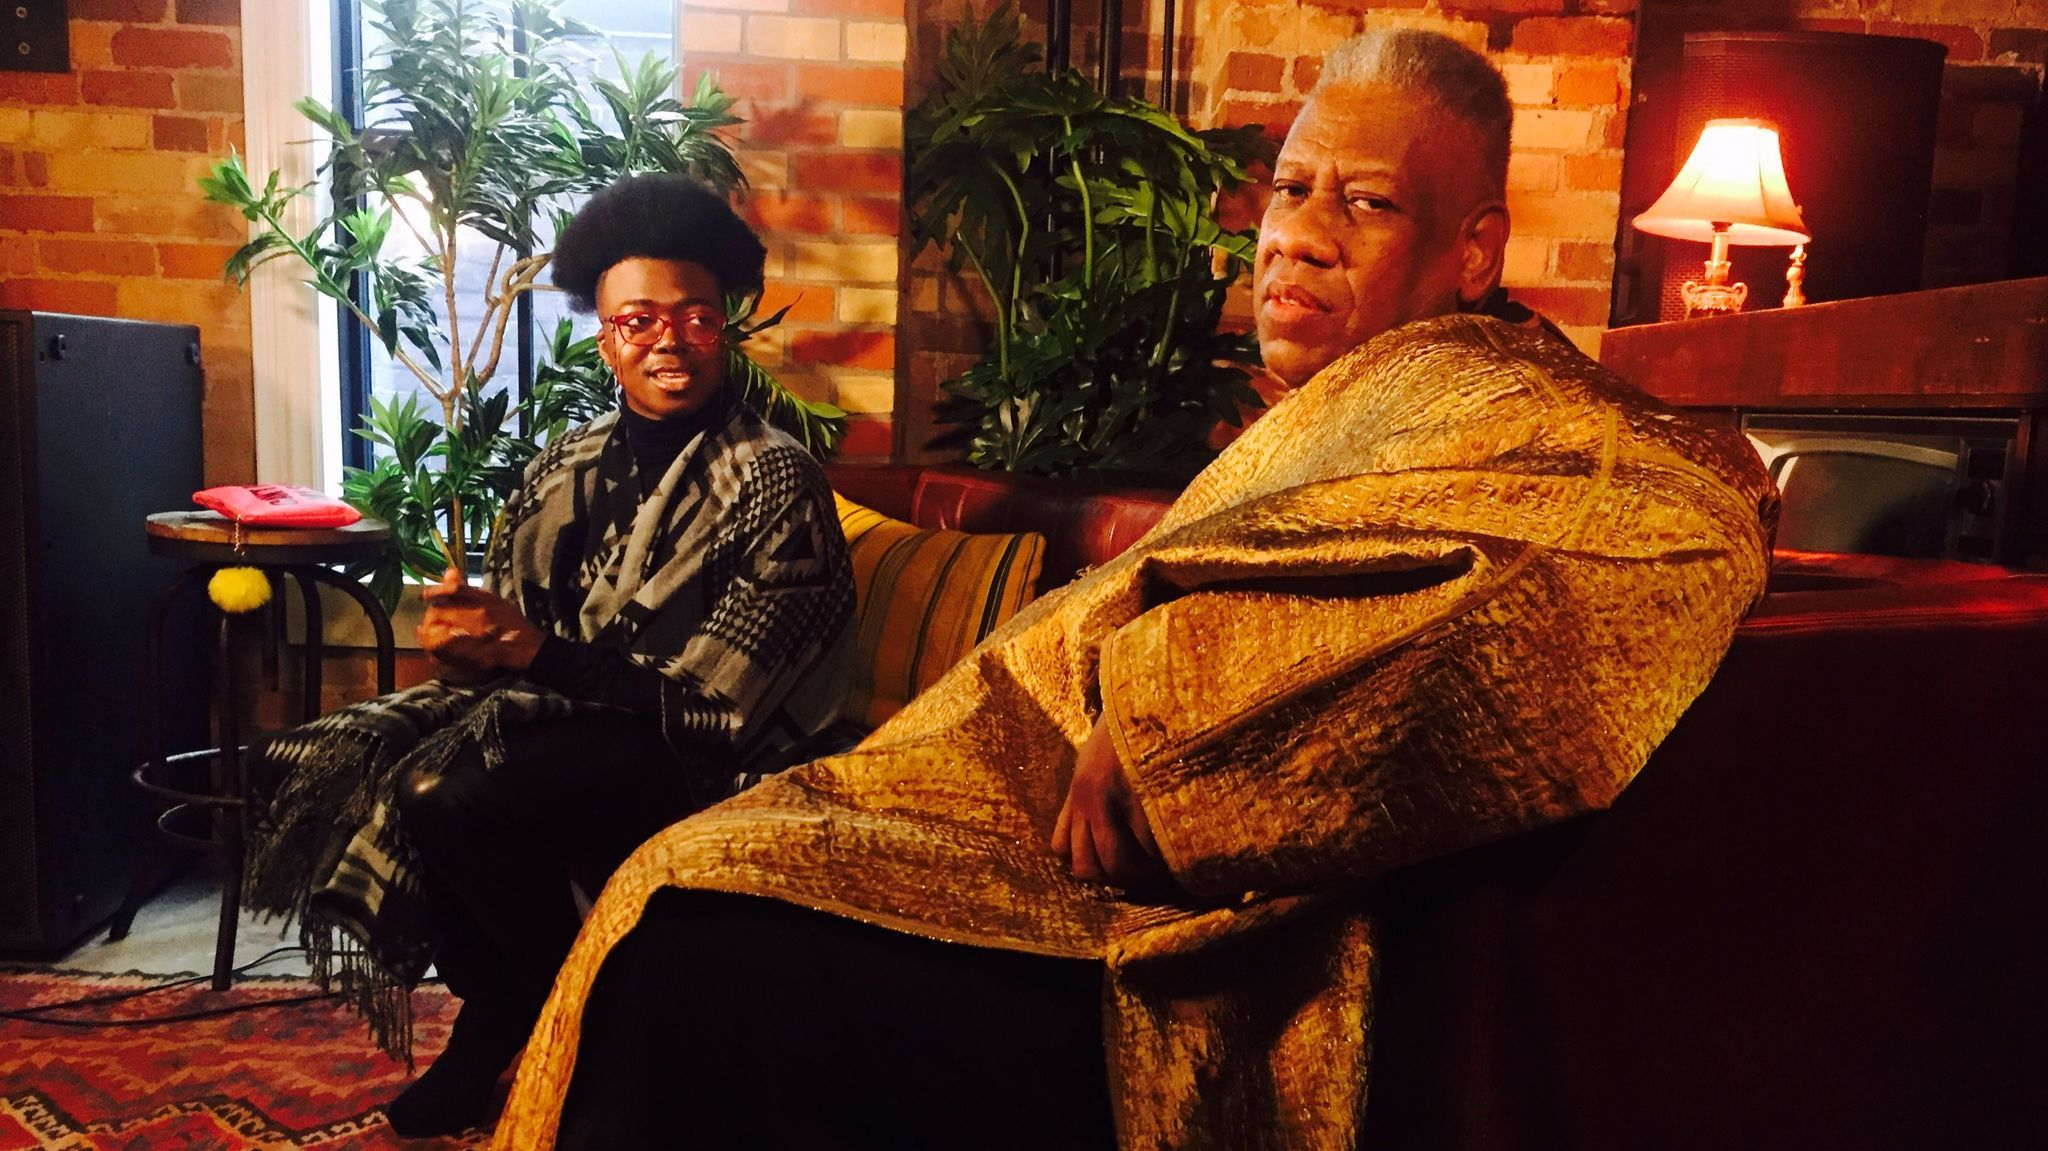 Los Angeles Times writer Tre'vell Anderson, left, speaks with fashion icon André Leon Talley. (Jen Yamato / Los Angeles Times)